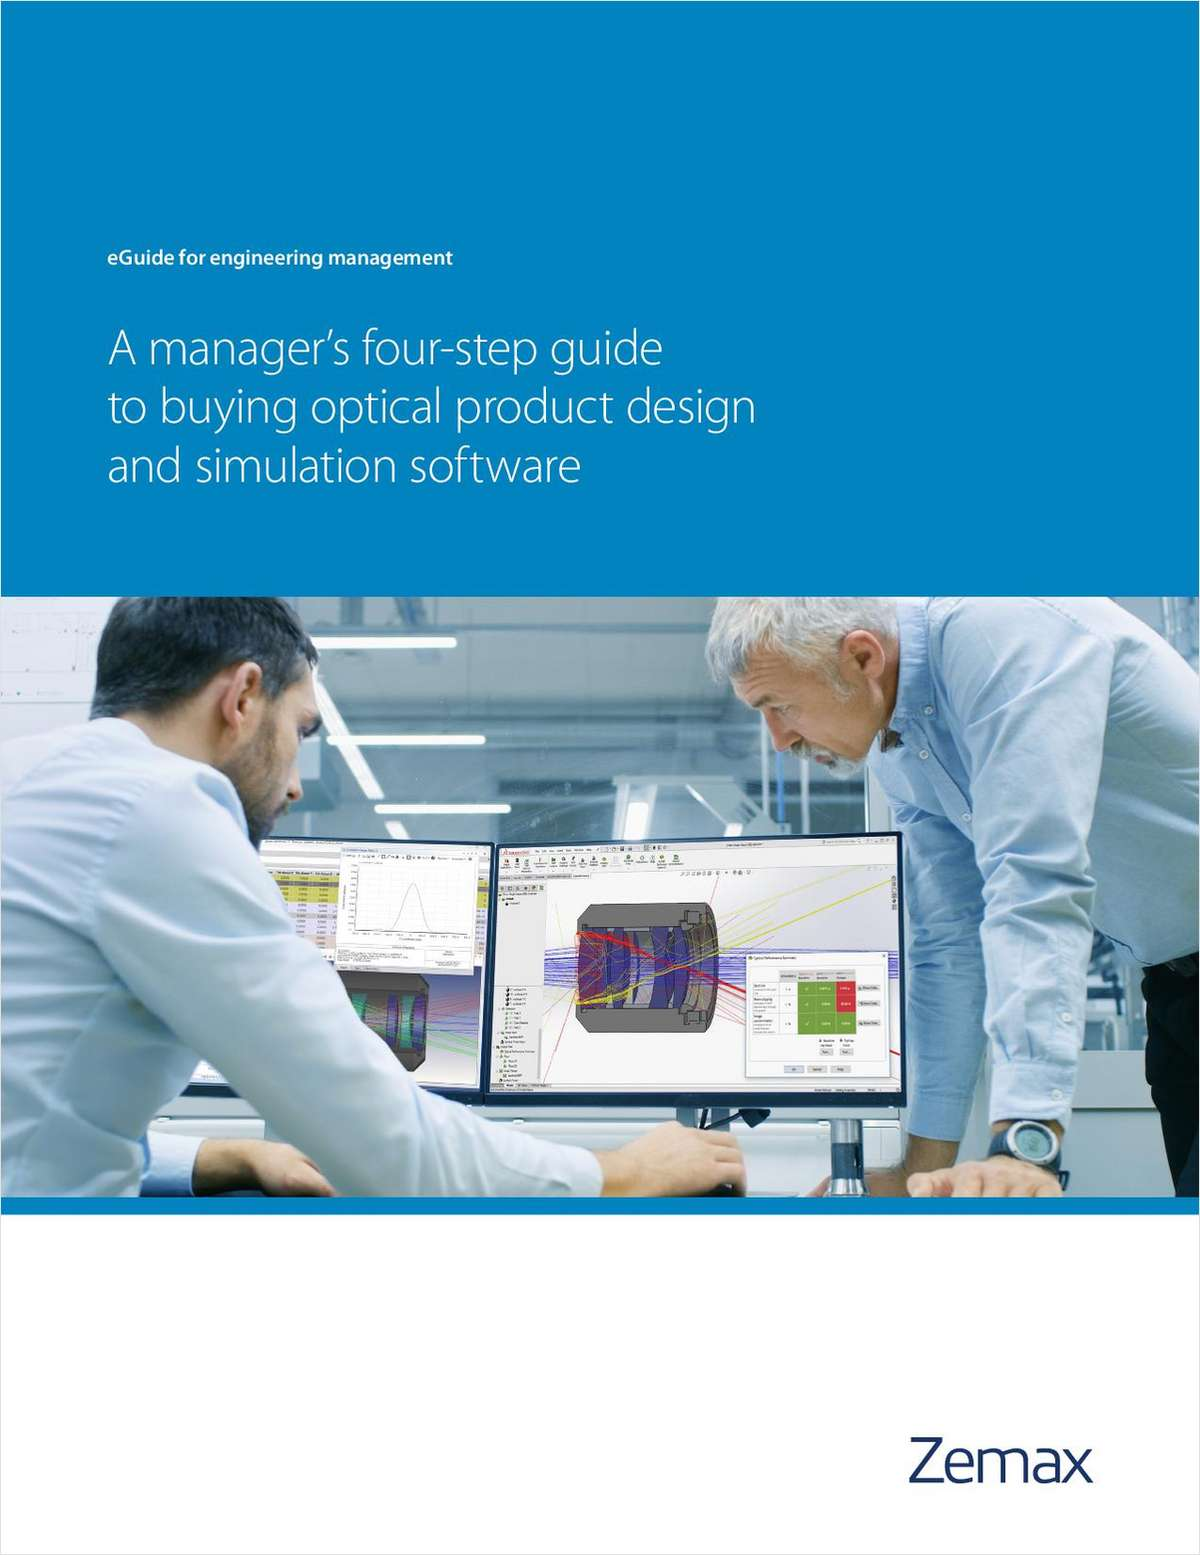 A Manager's Four-Step Guide to Buying Optical Product Design